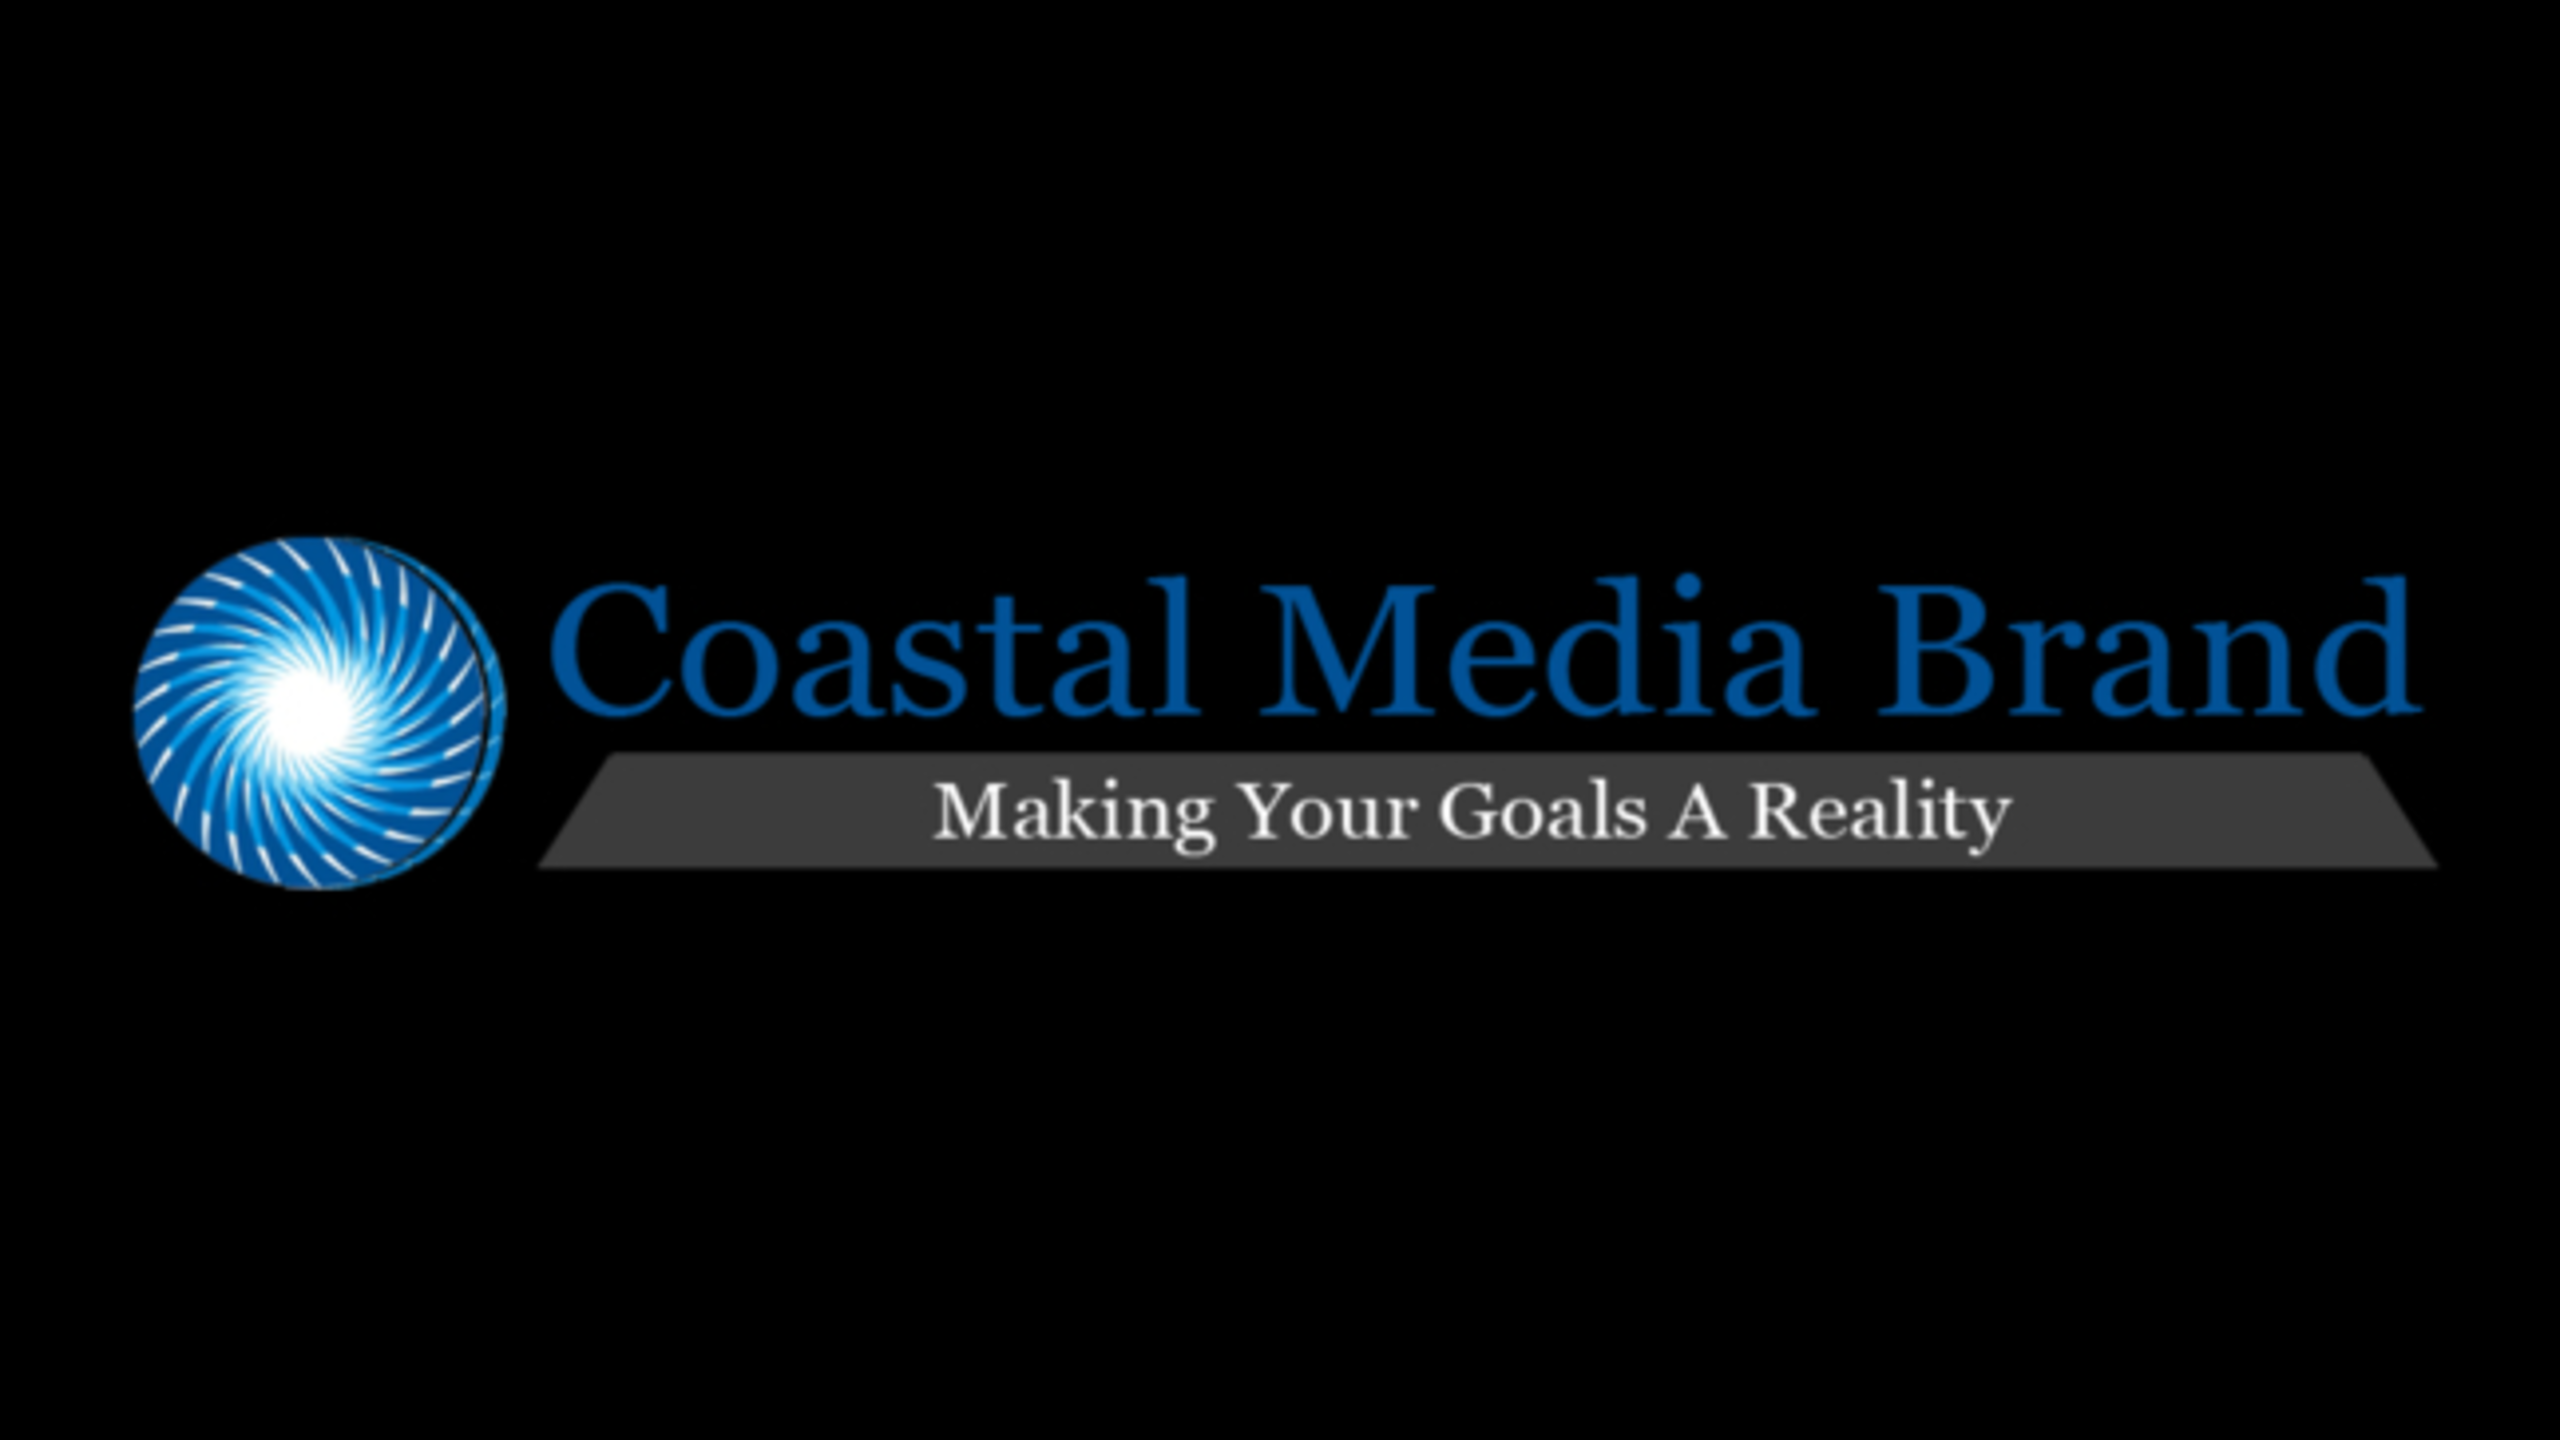 Coastal Media Brand Is An Award Winning Website Design And Seo Company Located In Myrtle Beach Sc See More At H Fun Website Design Web Design Company Coastal